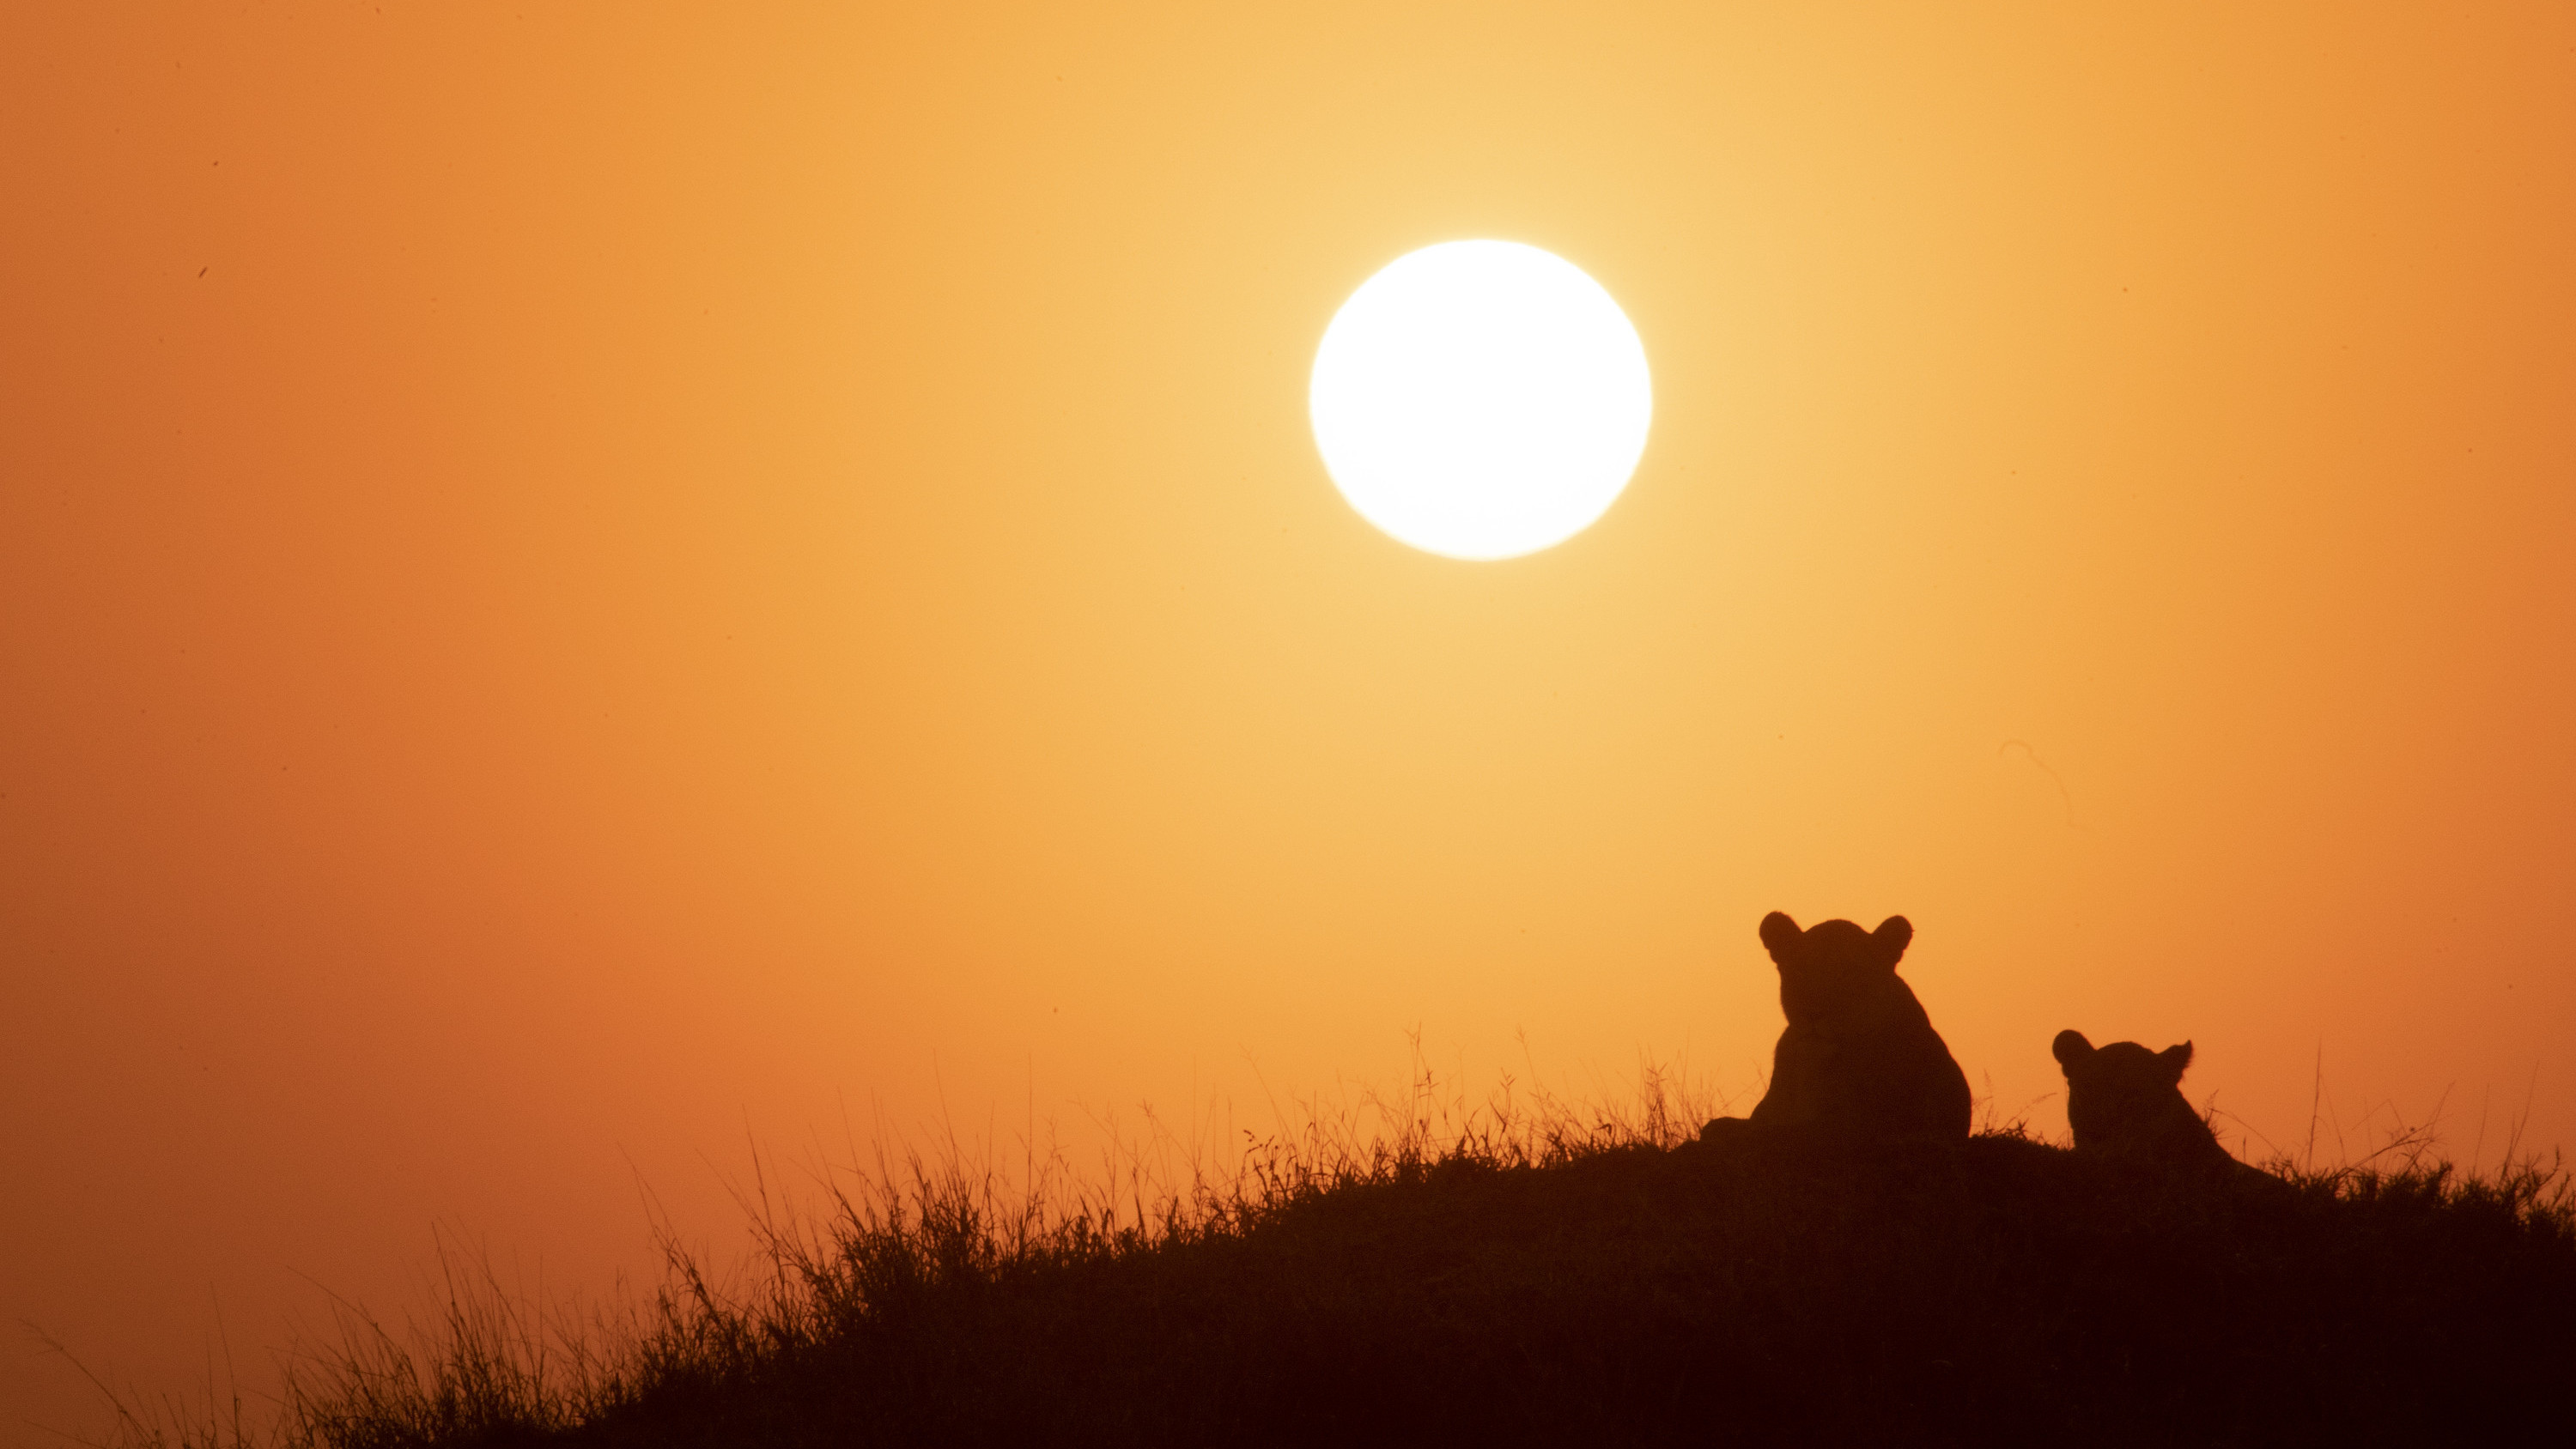 Issa and Nuru relax on a hill at sundown. (National Geographic for Disney+/Russell MacLaughlin)